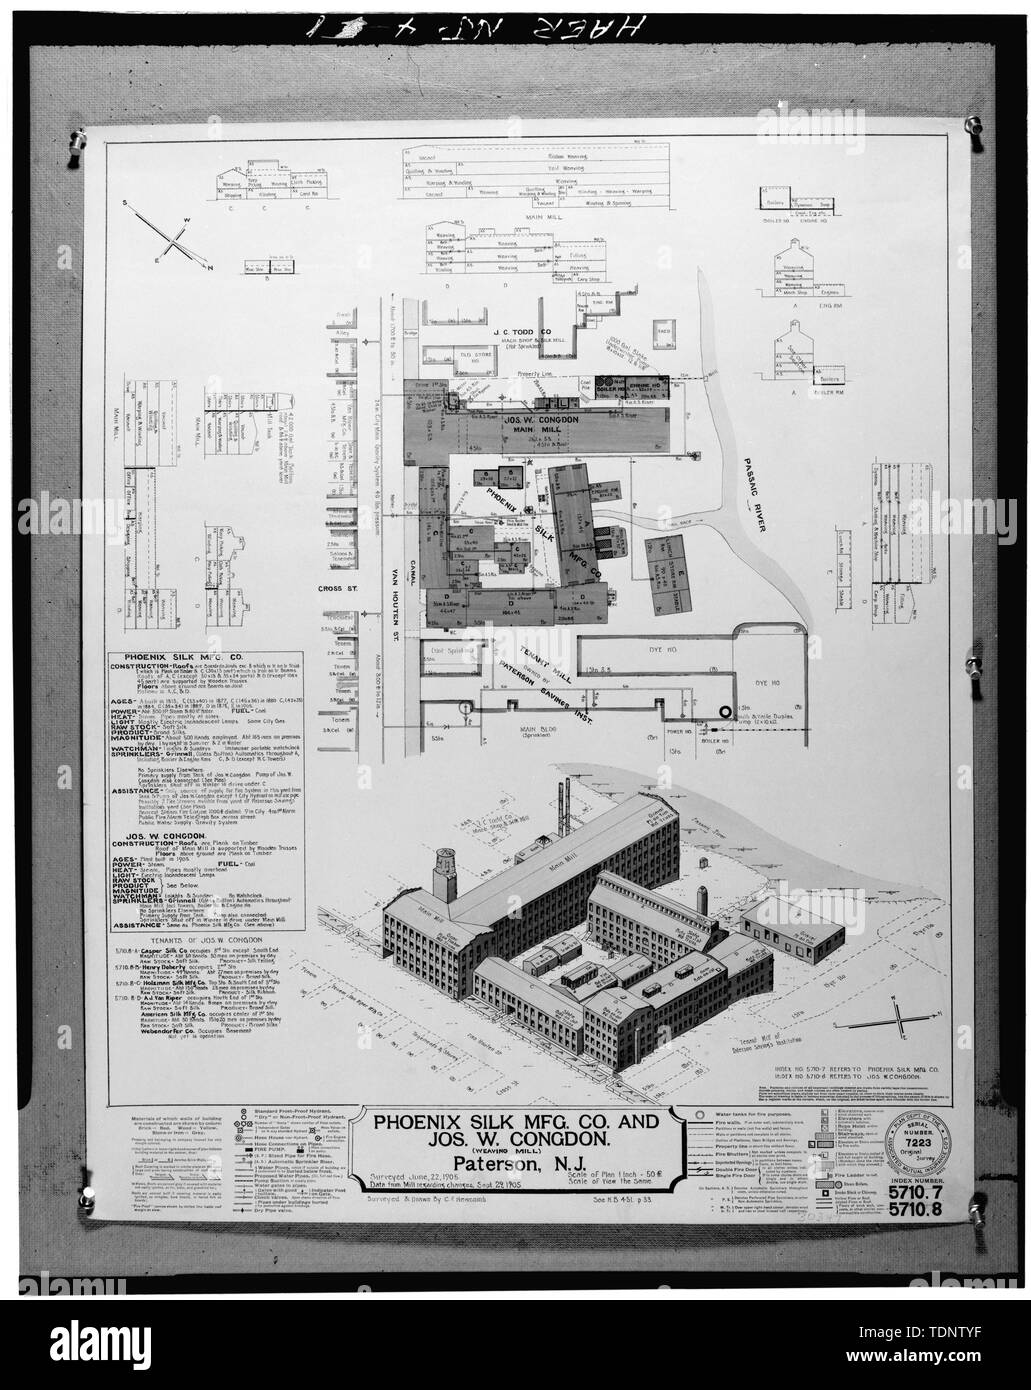 Photocopy of Associated Mutual Company Fire Insurance Map-1905. VIEW AND PLAN (4x5 NEGATIVE) - Phoenix Mill, Van Houten and Cianci Streets, Paterson, Passaic County, NJ - Stock Image